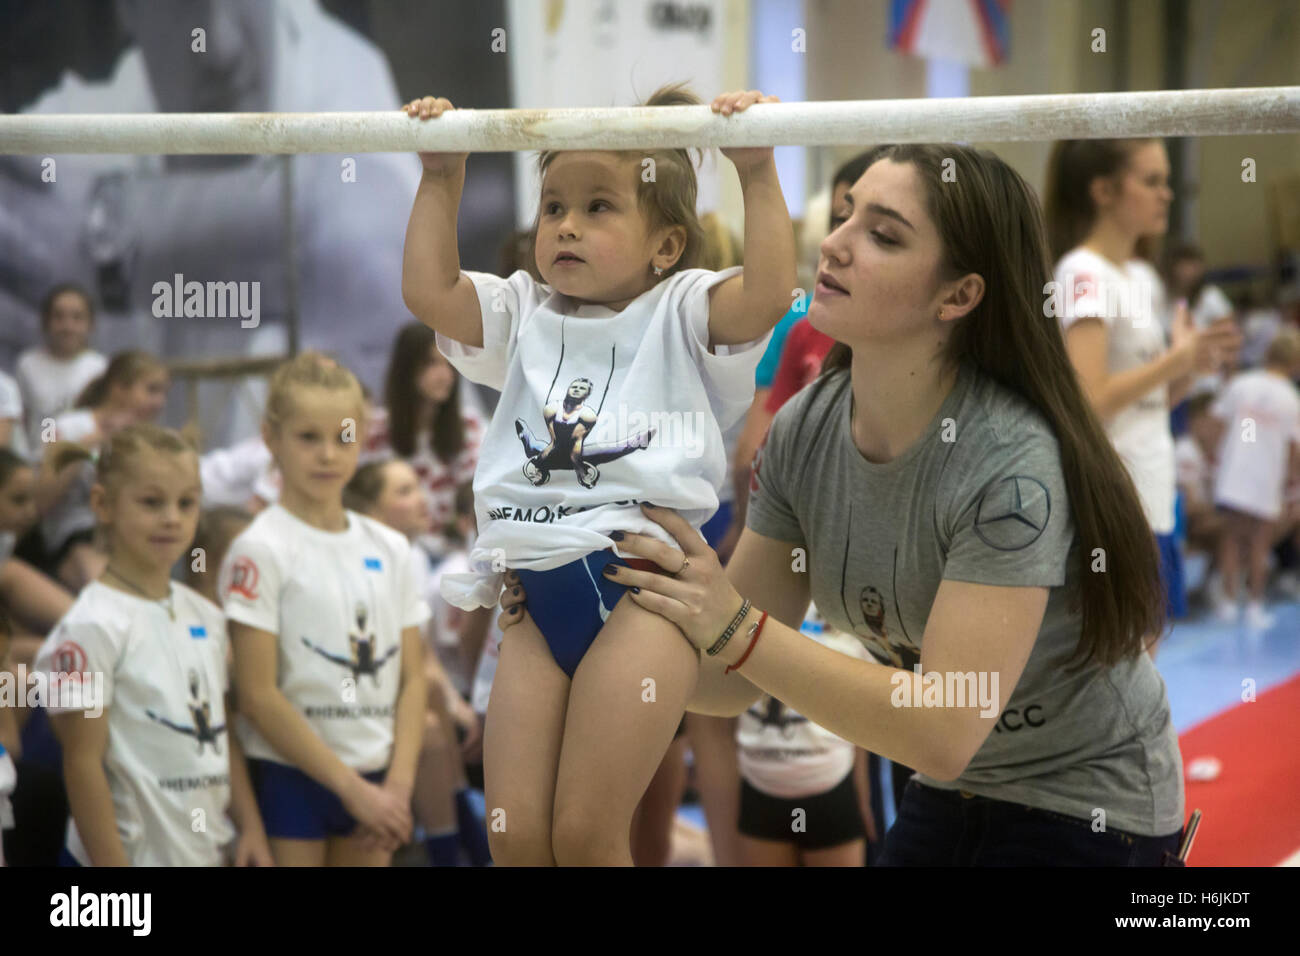 Russia's Olympic champion in artistic gymnastics Aliya Mustafina during the master class in gymnastics for children - Stock Image